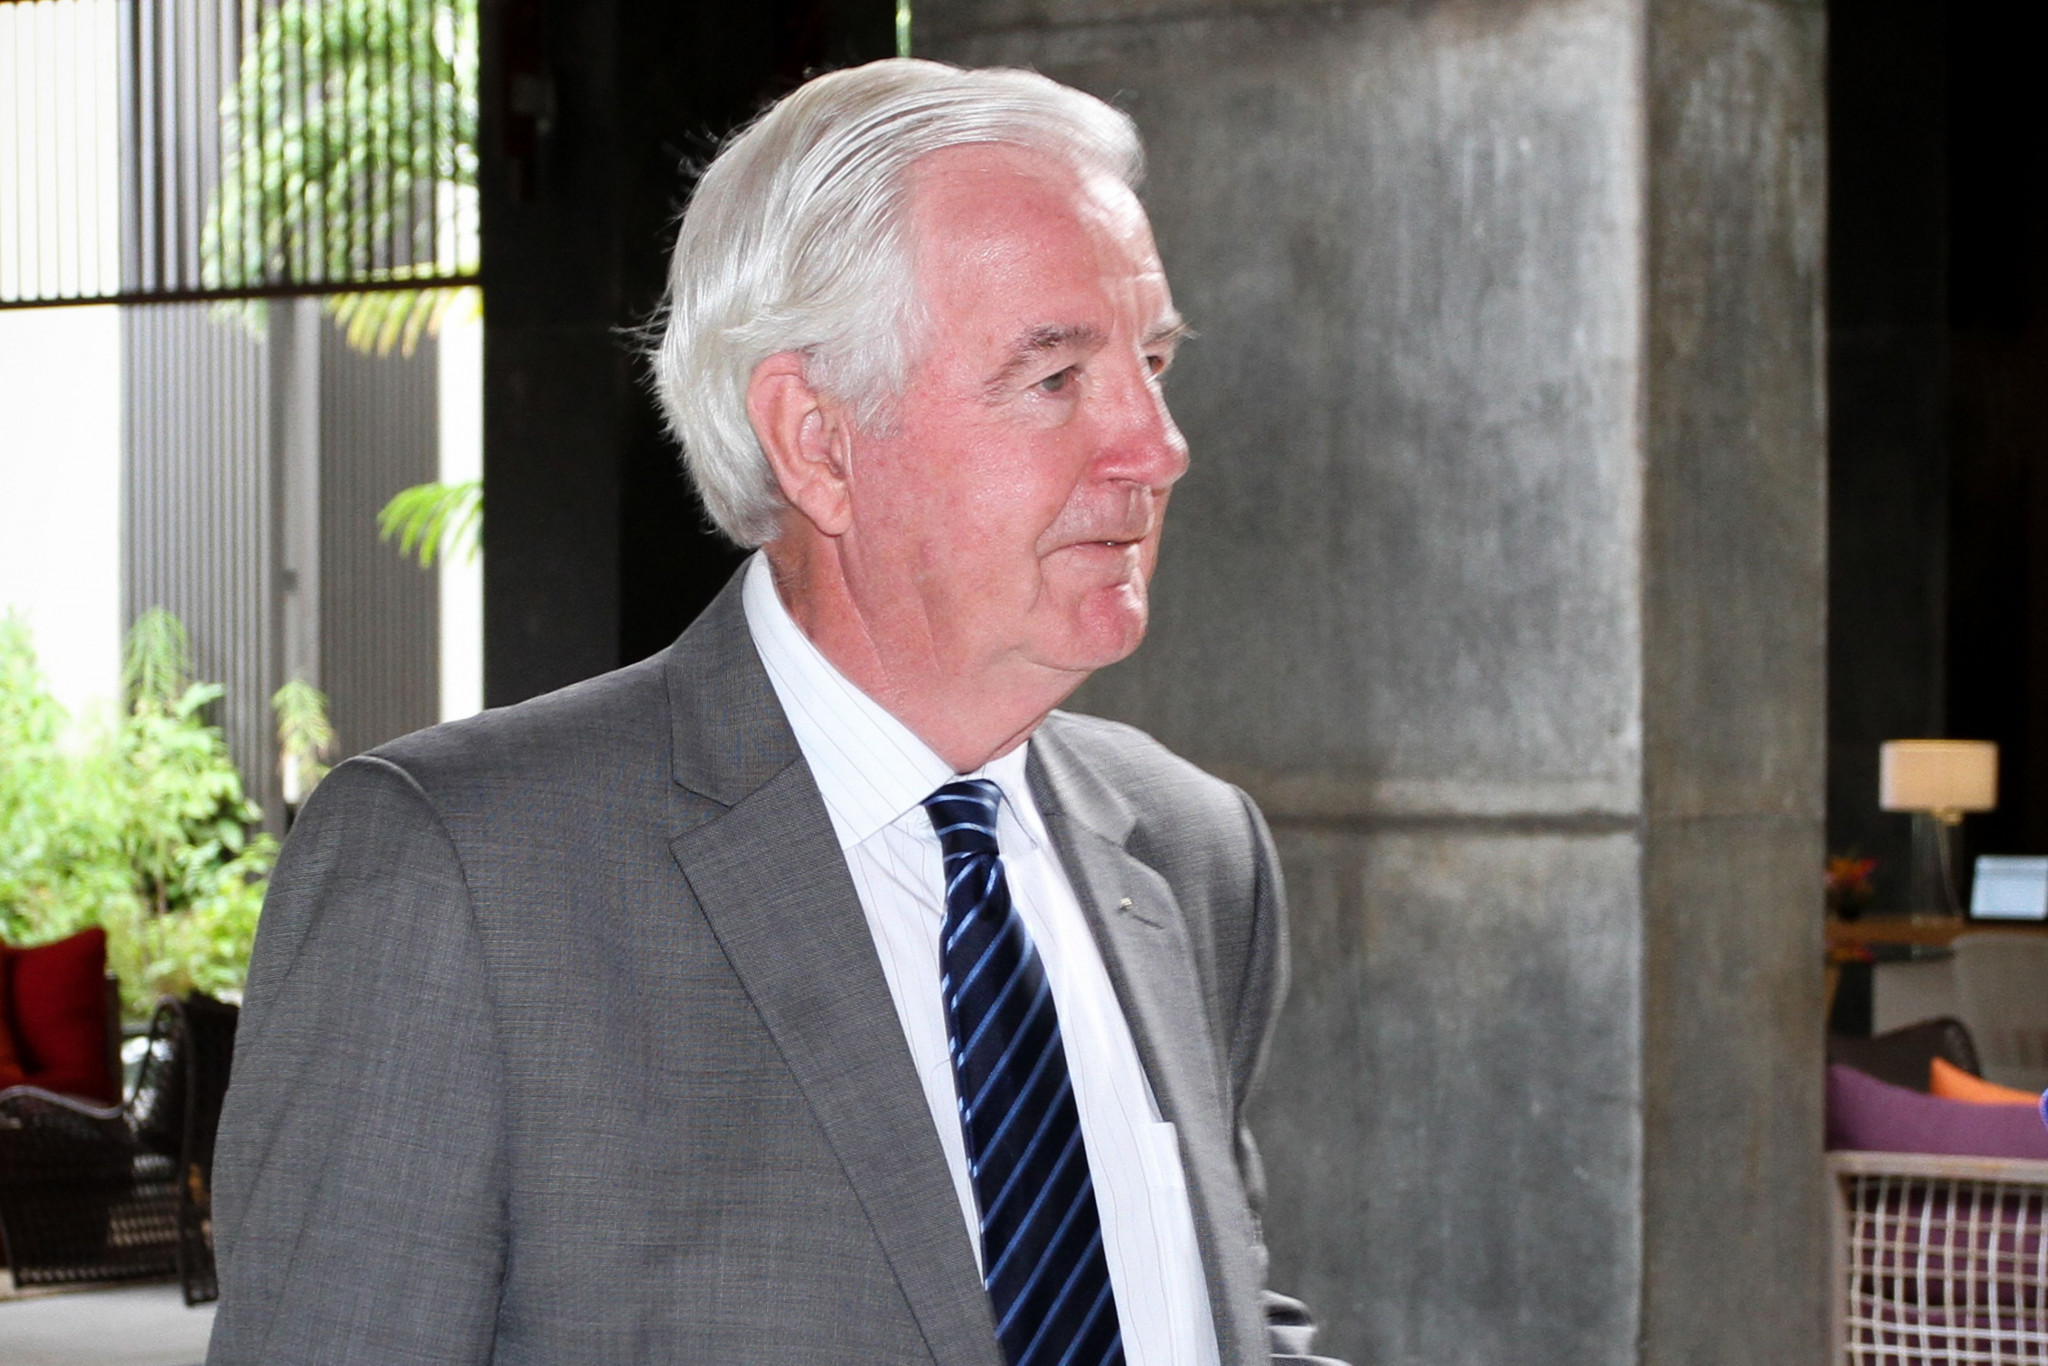 WADA President Sir Craig Reedie defended the decision taken by the Executive Committee ©Getty Images